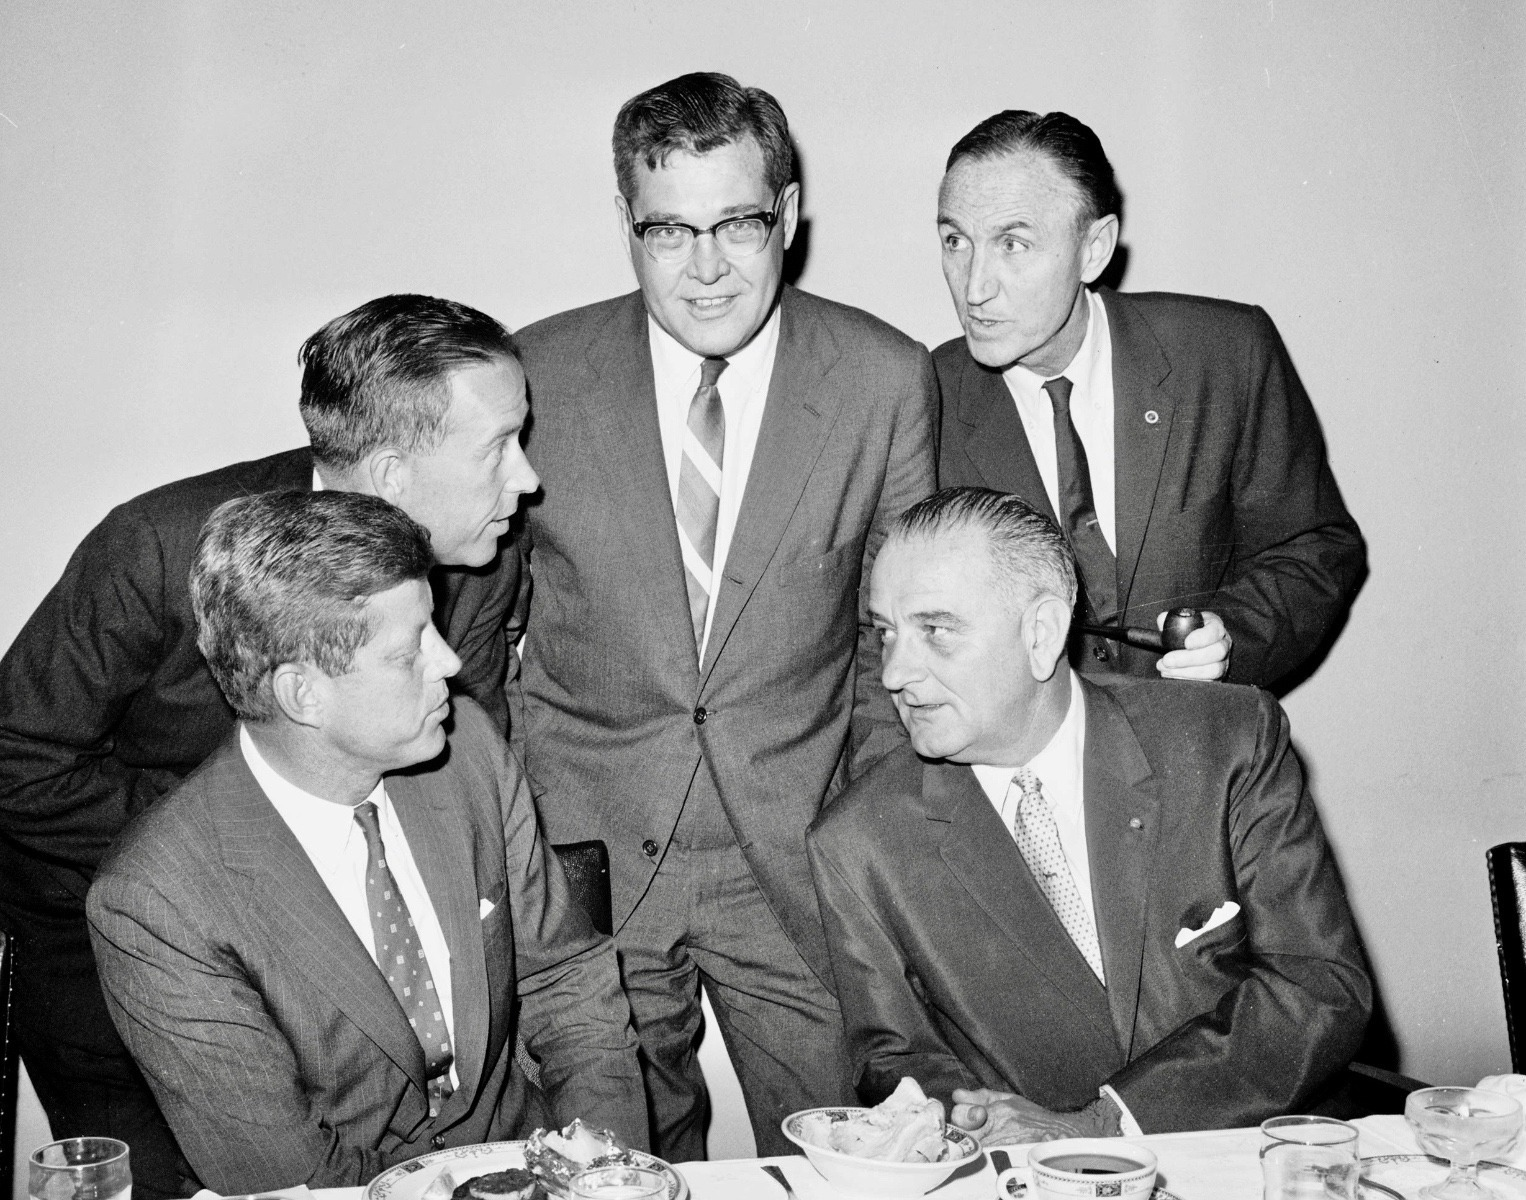 U.S. Rep. Lee Metcalf of Montana (standing, center) meets with Senate Democratic leaders in the U.S. Senate during a meal  in August 1960 prior to the fall 1960 state and national elections. Pictured are (left to right)  1960 Democratic presidential candidate Senator John F. Kennedy; Senator Henry M. Jackson, National  Democratic Party Chairman; Metcalf; Senate Majority Leader Lyndon B. Johnson; and Senate Assistant  Majority Leader Mike Mansfield, August 1960  U.S. Senate Democratic Photograph Studio photograph/courtesy Montana Historical Society